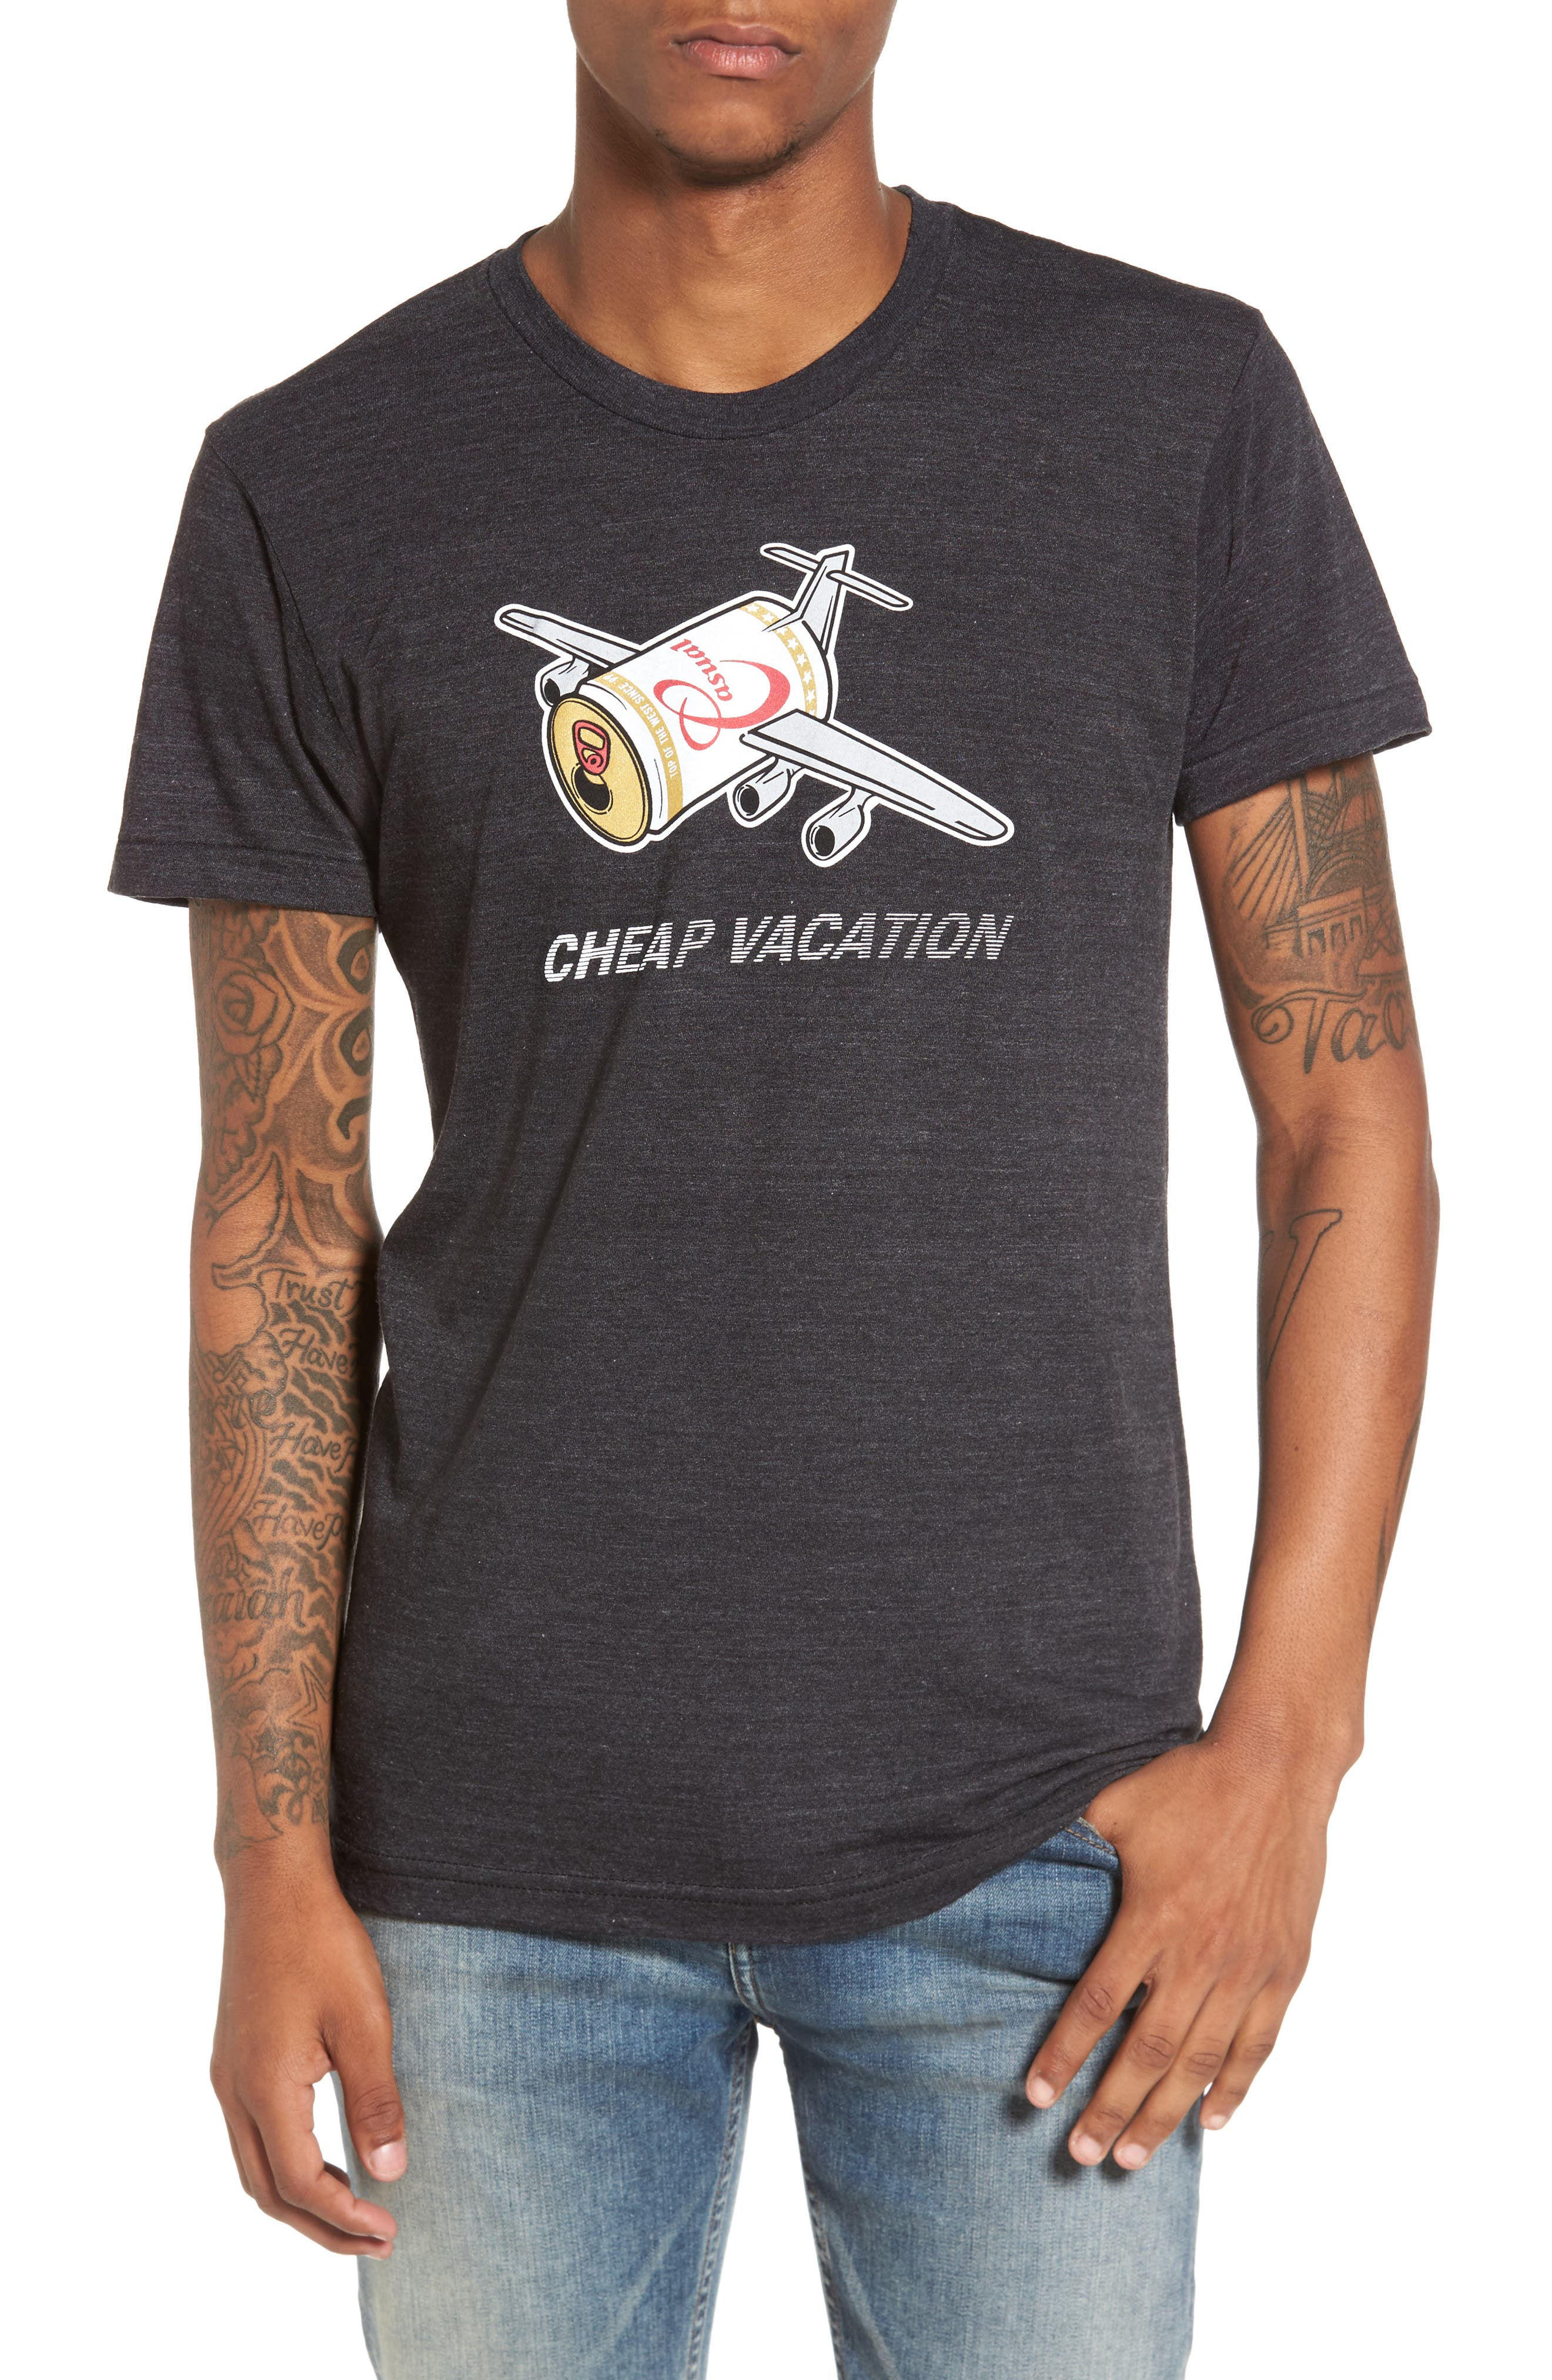 Alternate Image 1 Selected - Casual Industrees Cheap Vacation T-Shirt